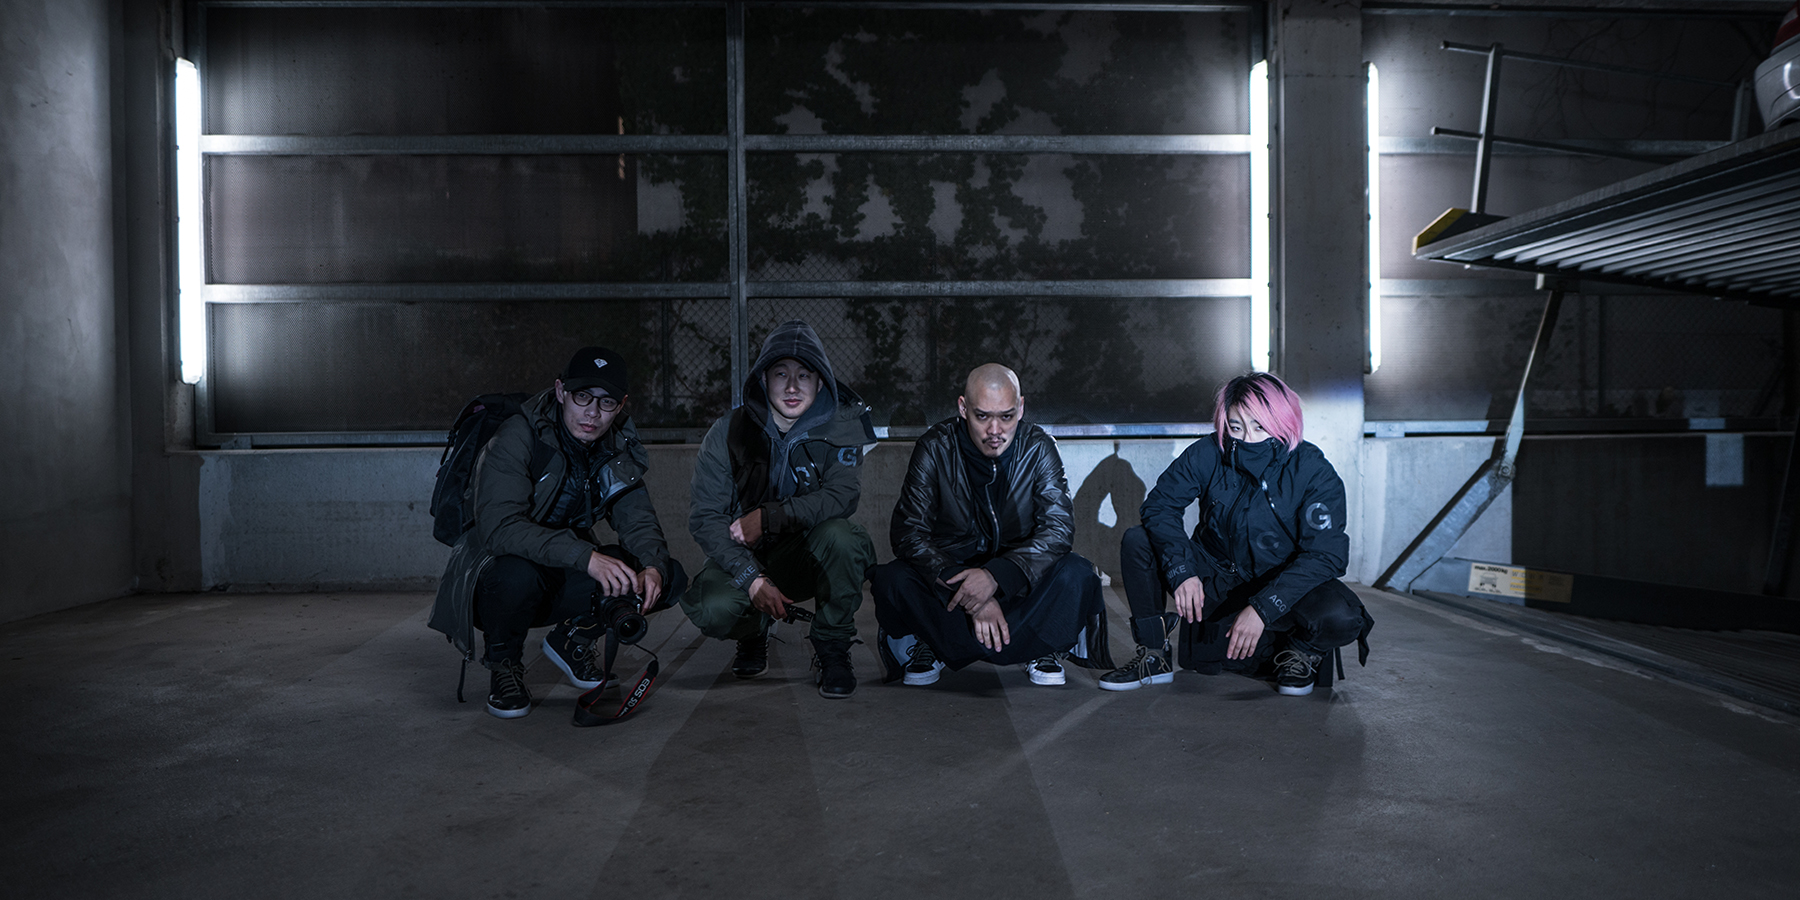 NikeLab Shanghai x ACRONYM® AF1 Downtown Berlin Launch - The Group